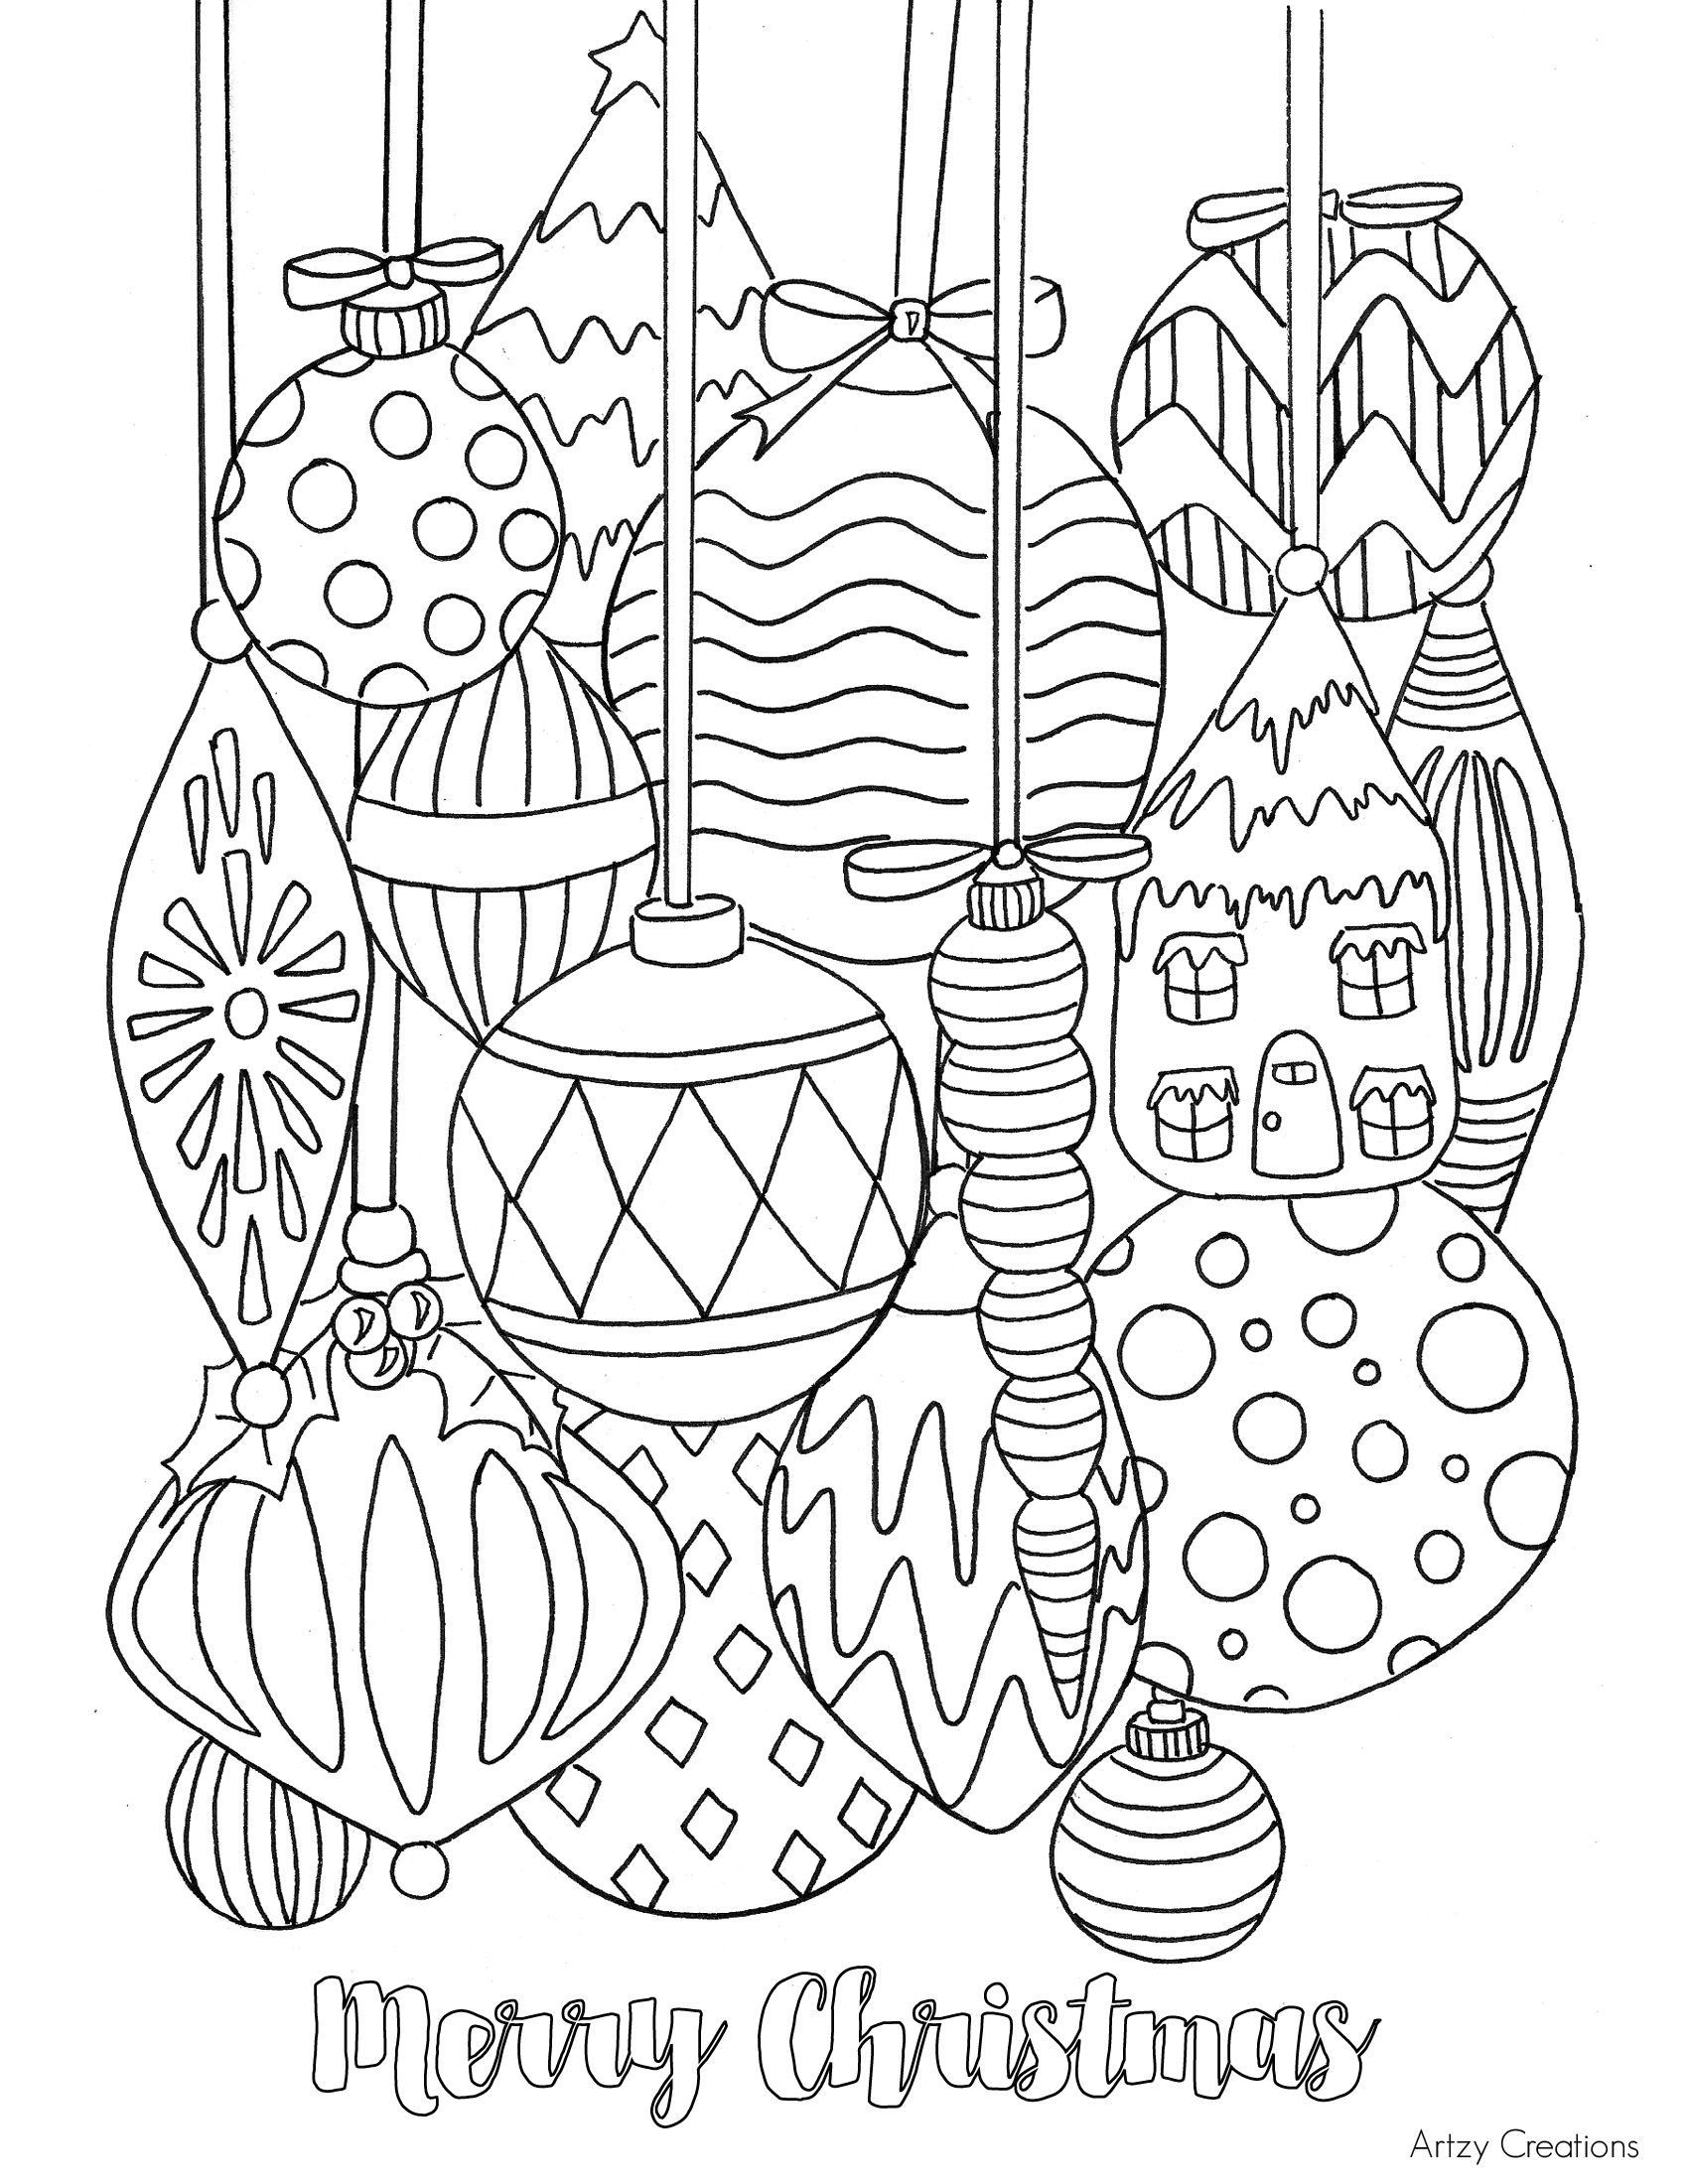 Christmas Coloring Cards Printable With Free Pages For Adults Download